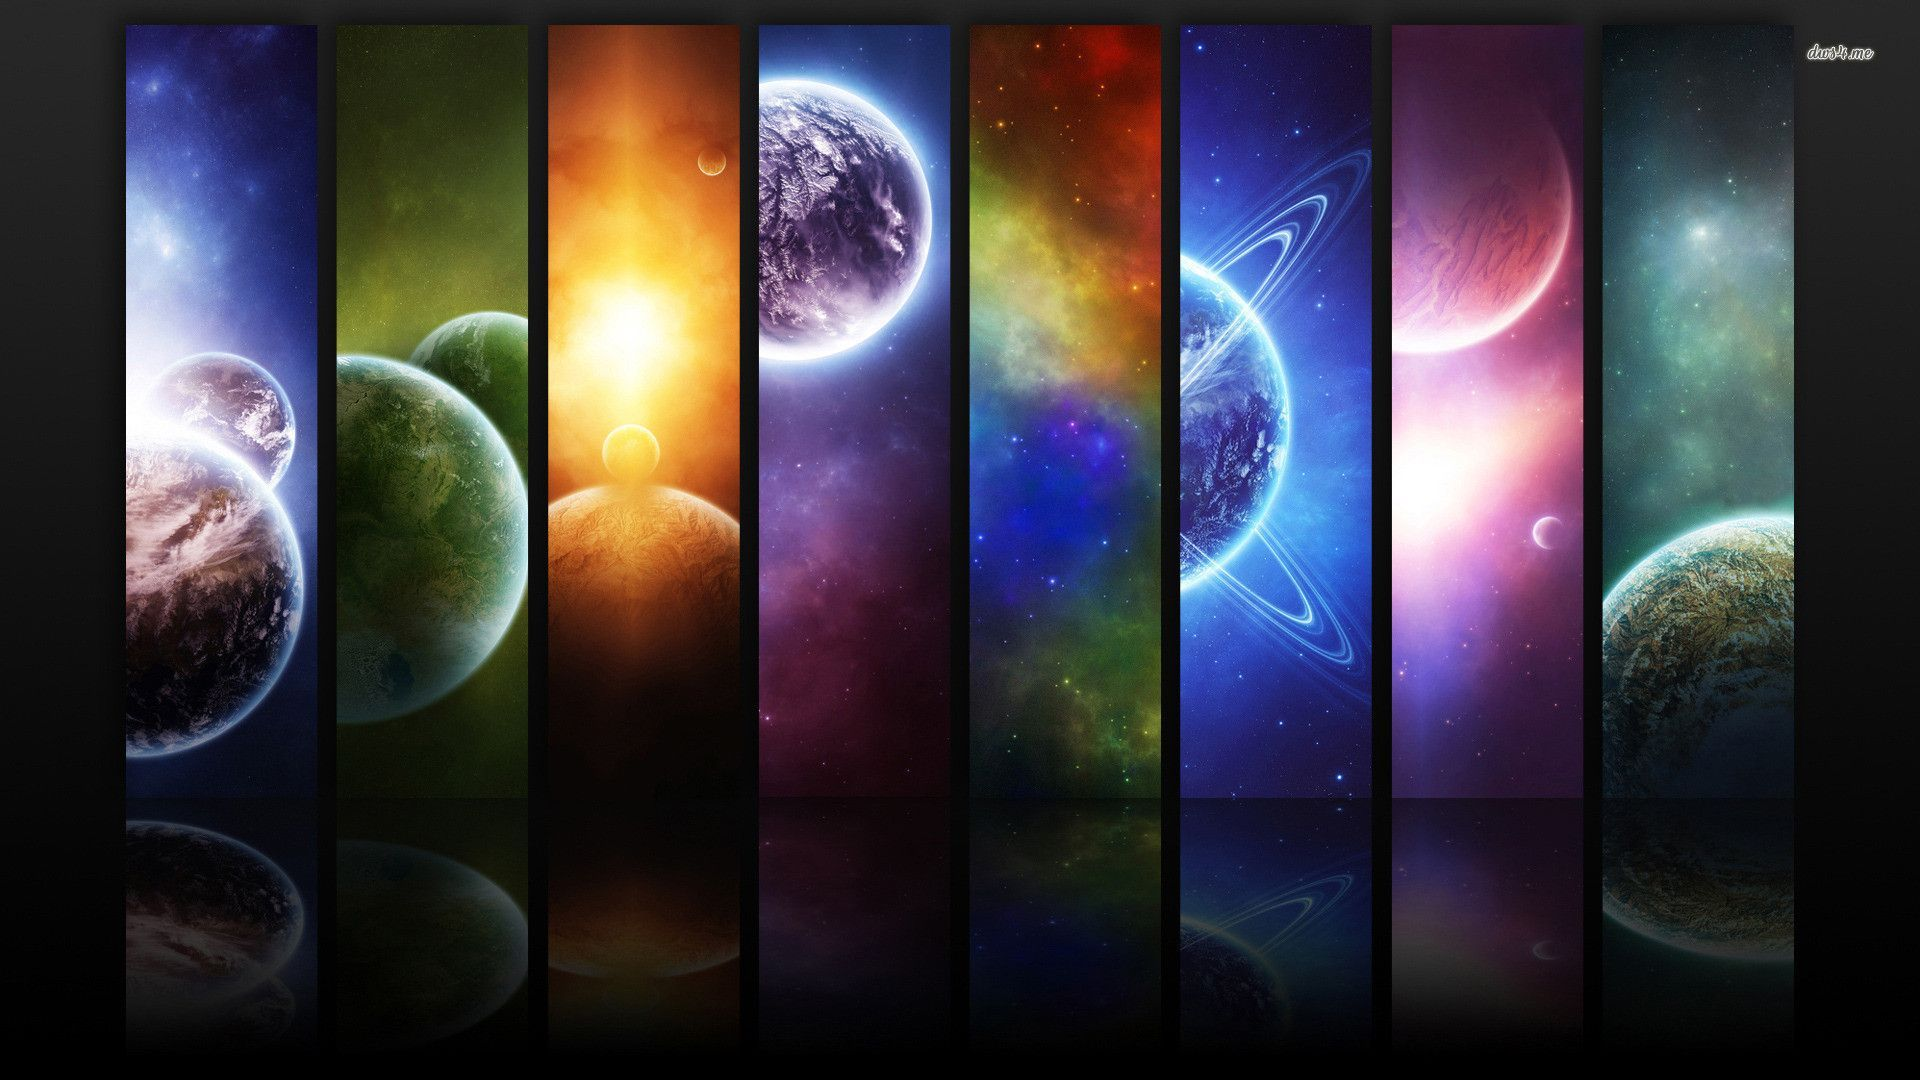 Best Ideas About Solar System Wallpaper On Pinterest 1920x1080 31